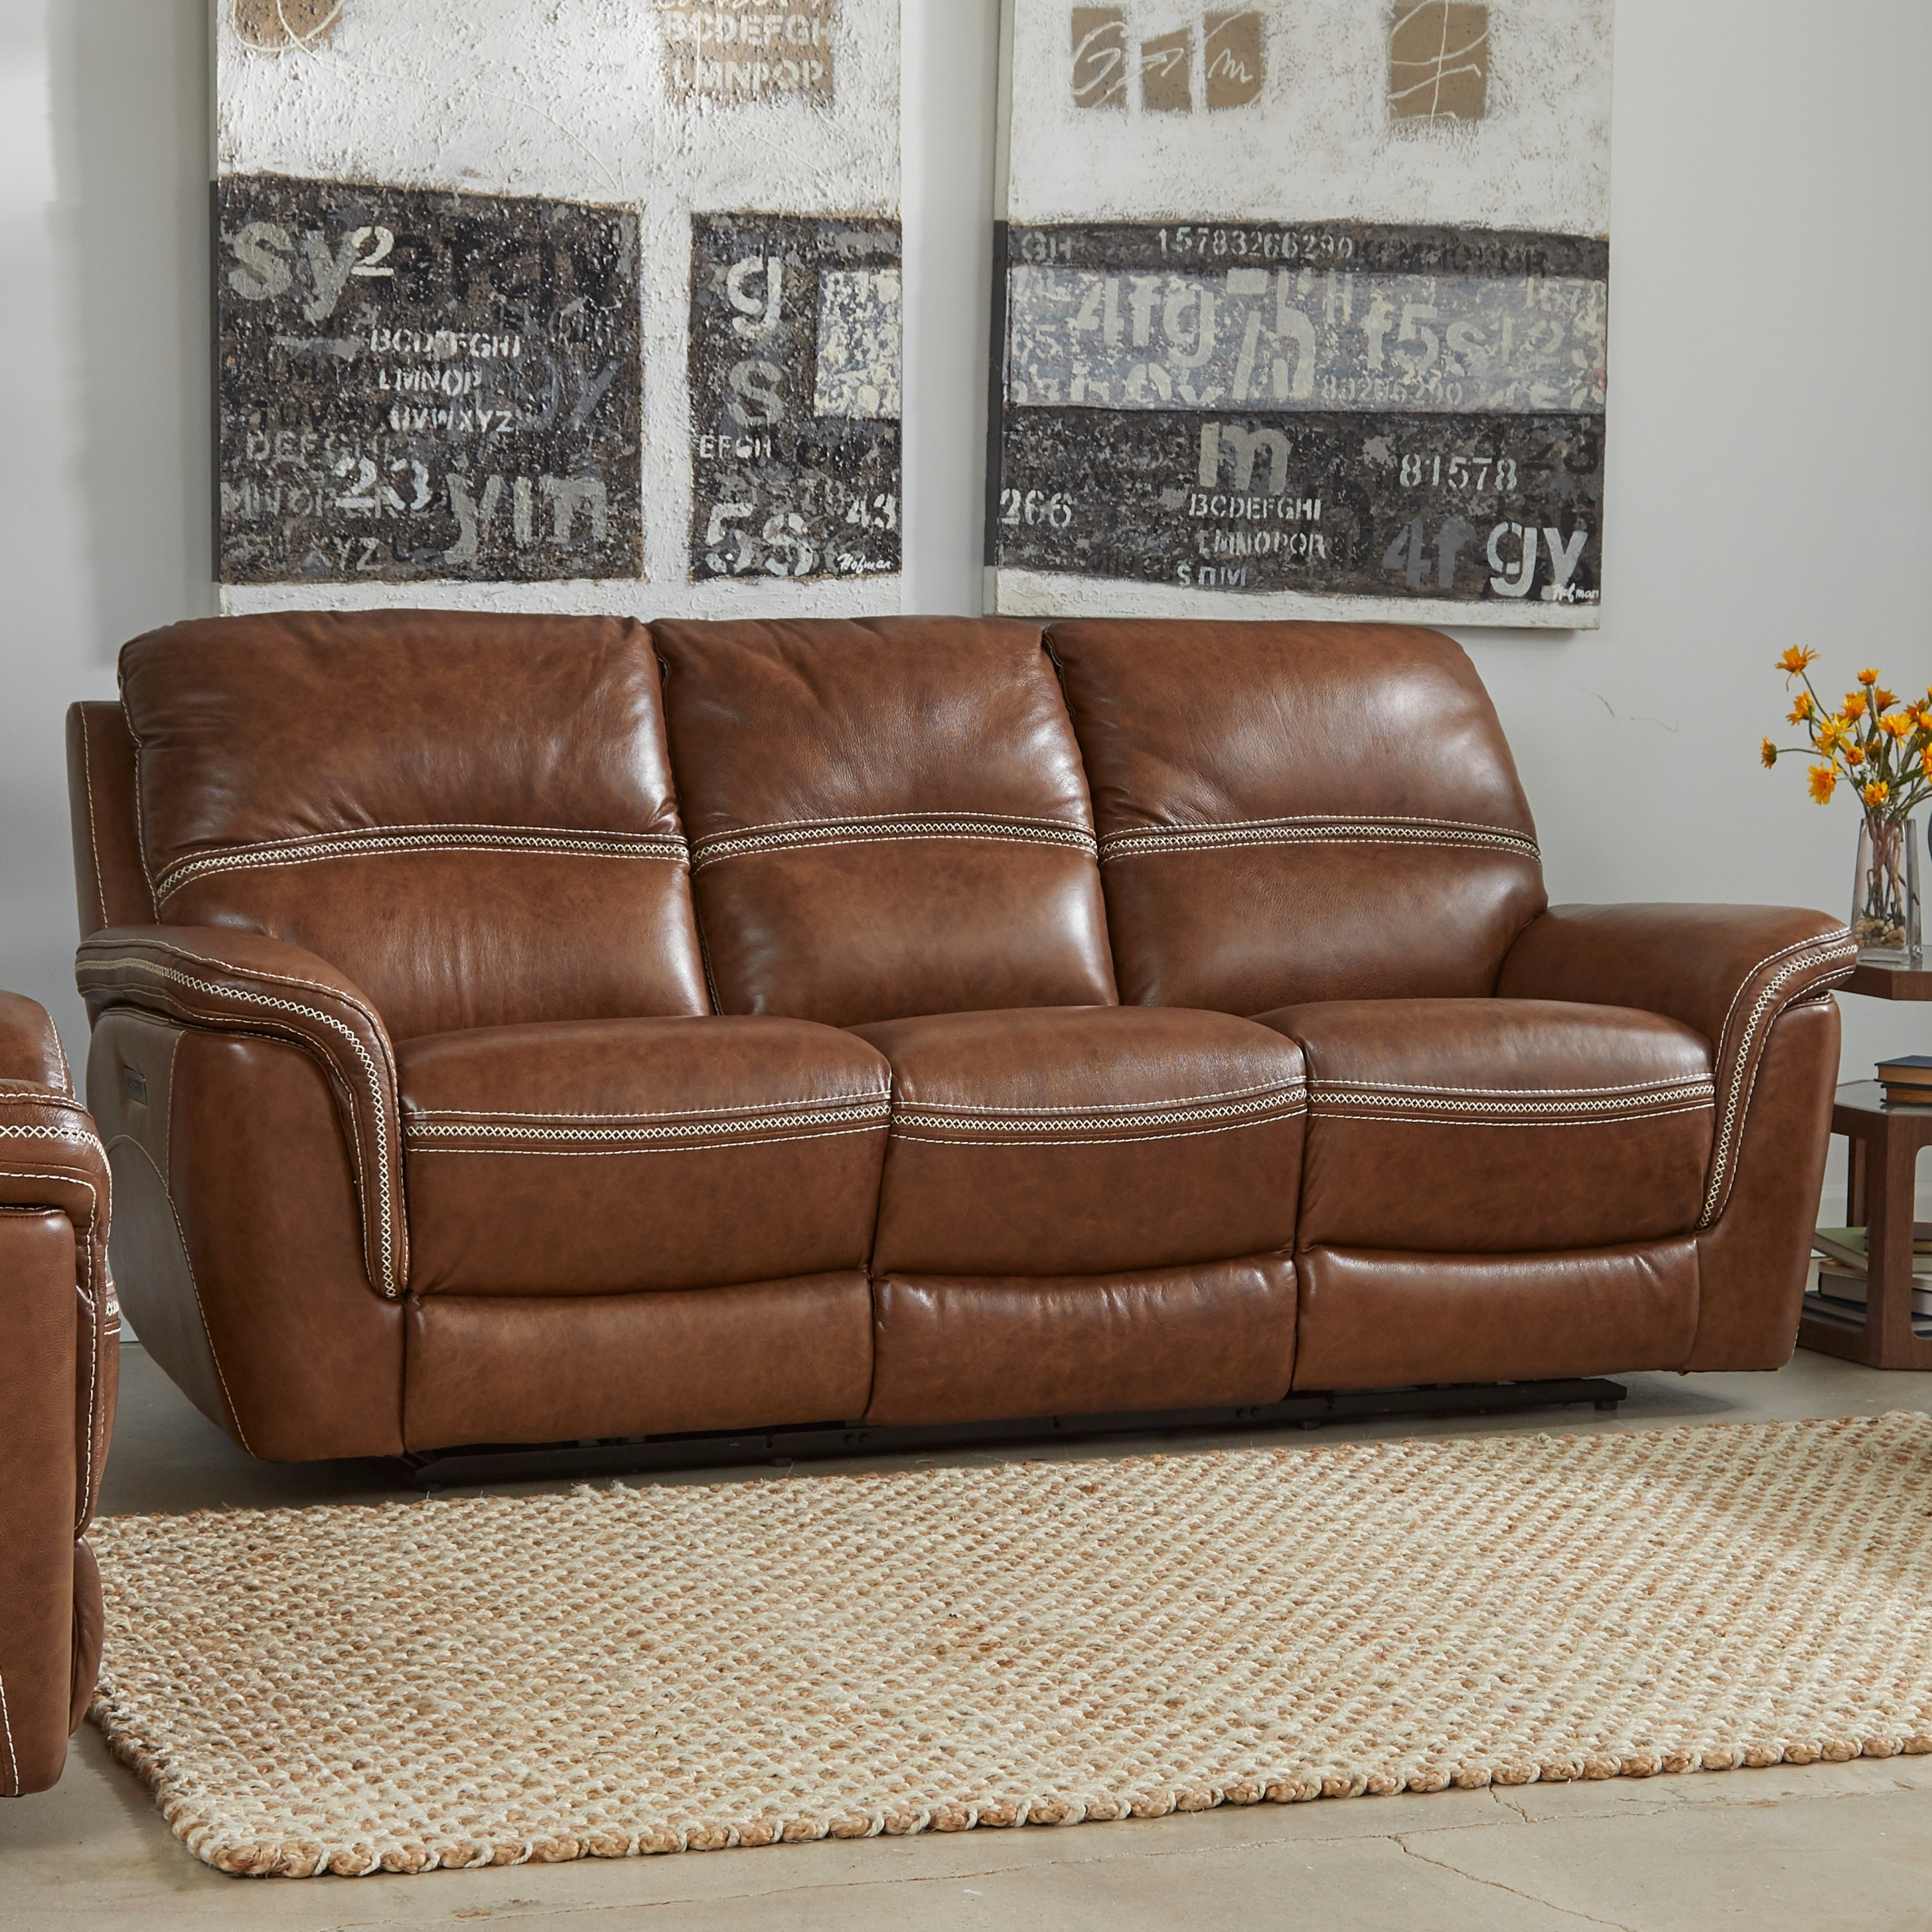 c18c515ed4 Buy Power Recline, Leather Sofas & Couches Online at Overstock | Our ...